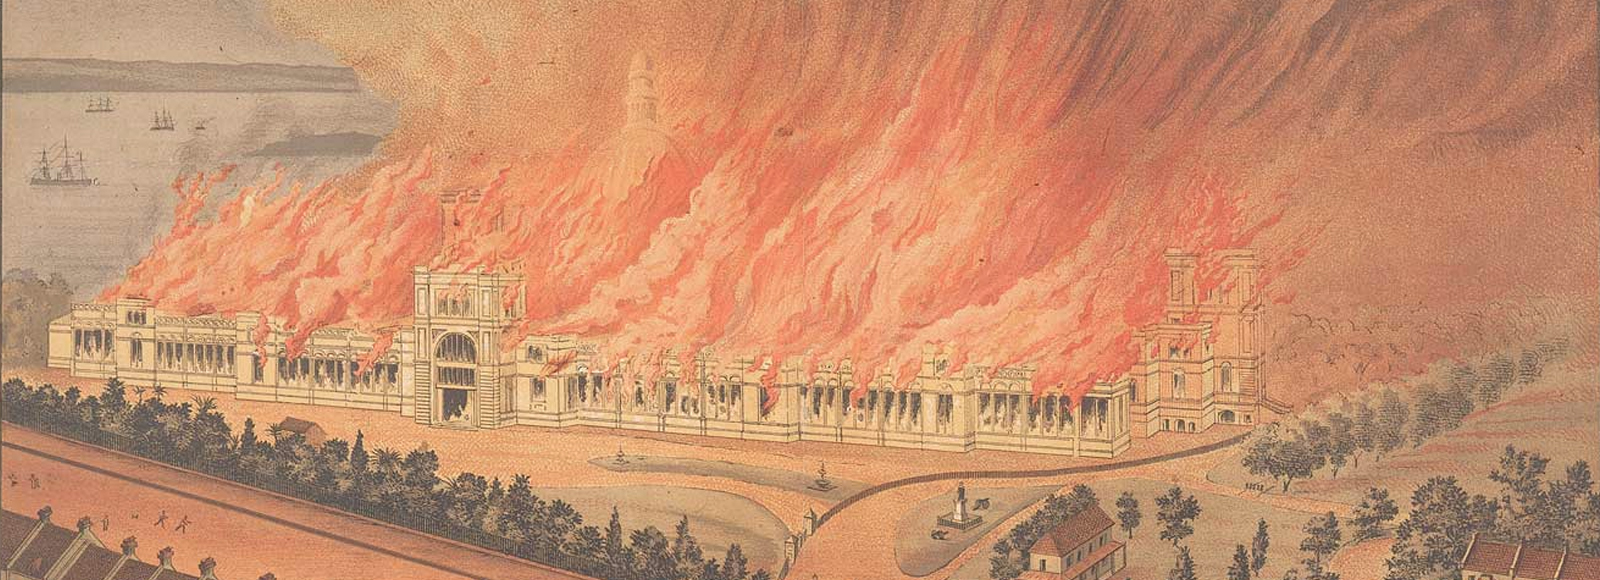 """""""Burning of the Garden Palace, Sydney,"""" by Gibbs Shallard & Company, 1882. Archival news clipping. Courtesy Museum of Applied Arts and Sciences Collection, Sydney."""